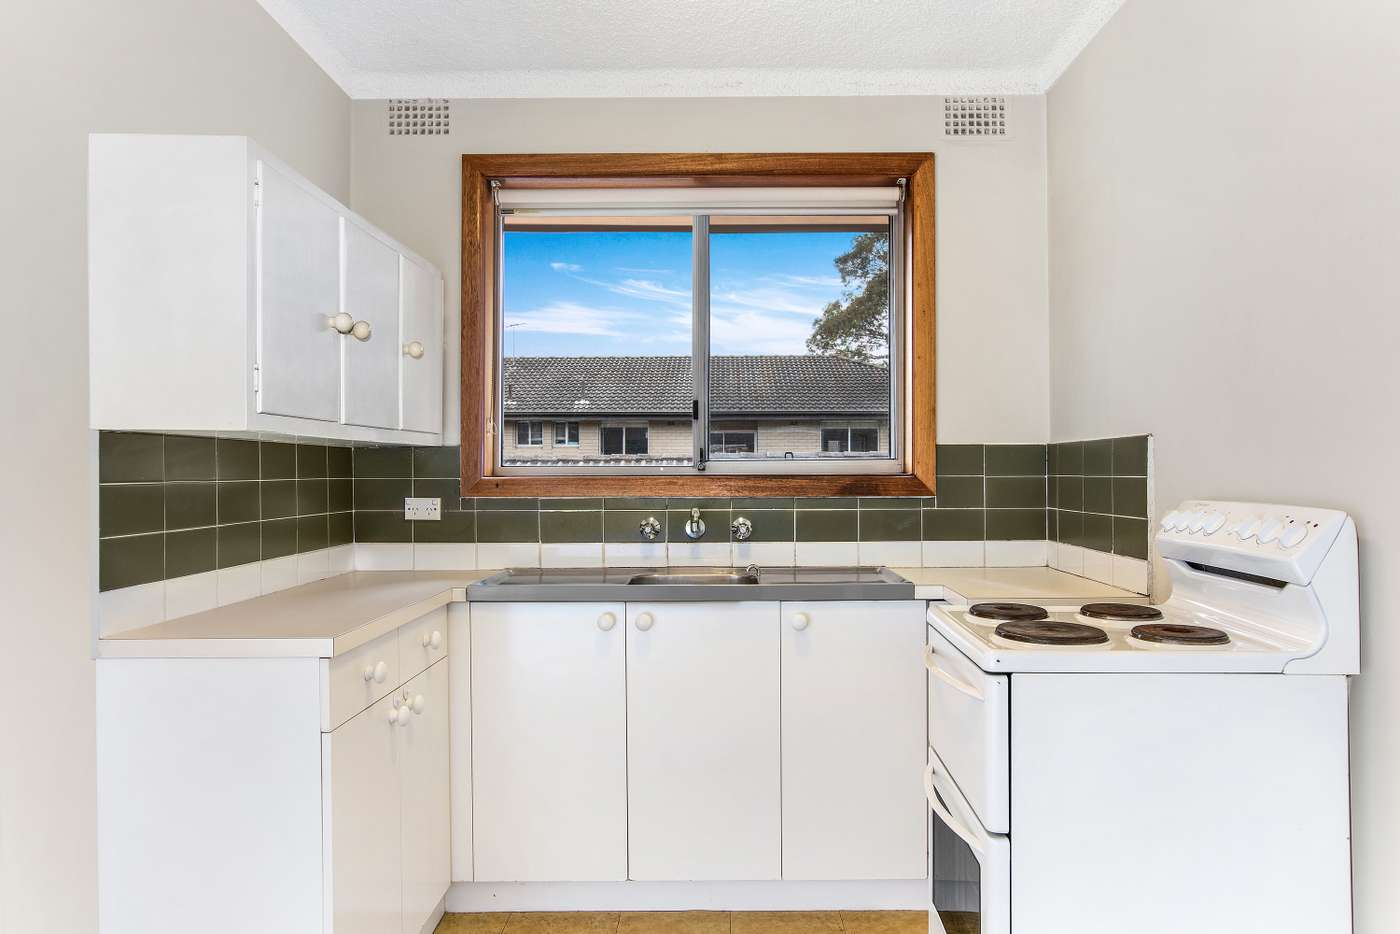 Main view of Homely apartment listing, 7/88 Station Street, West Ryde NSW 2114